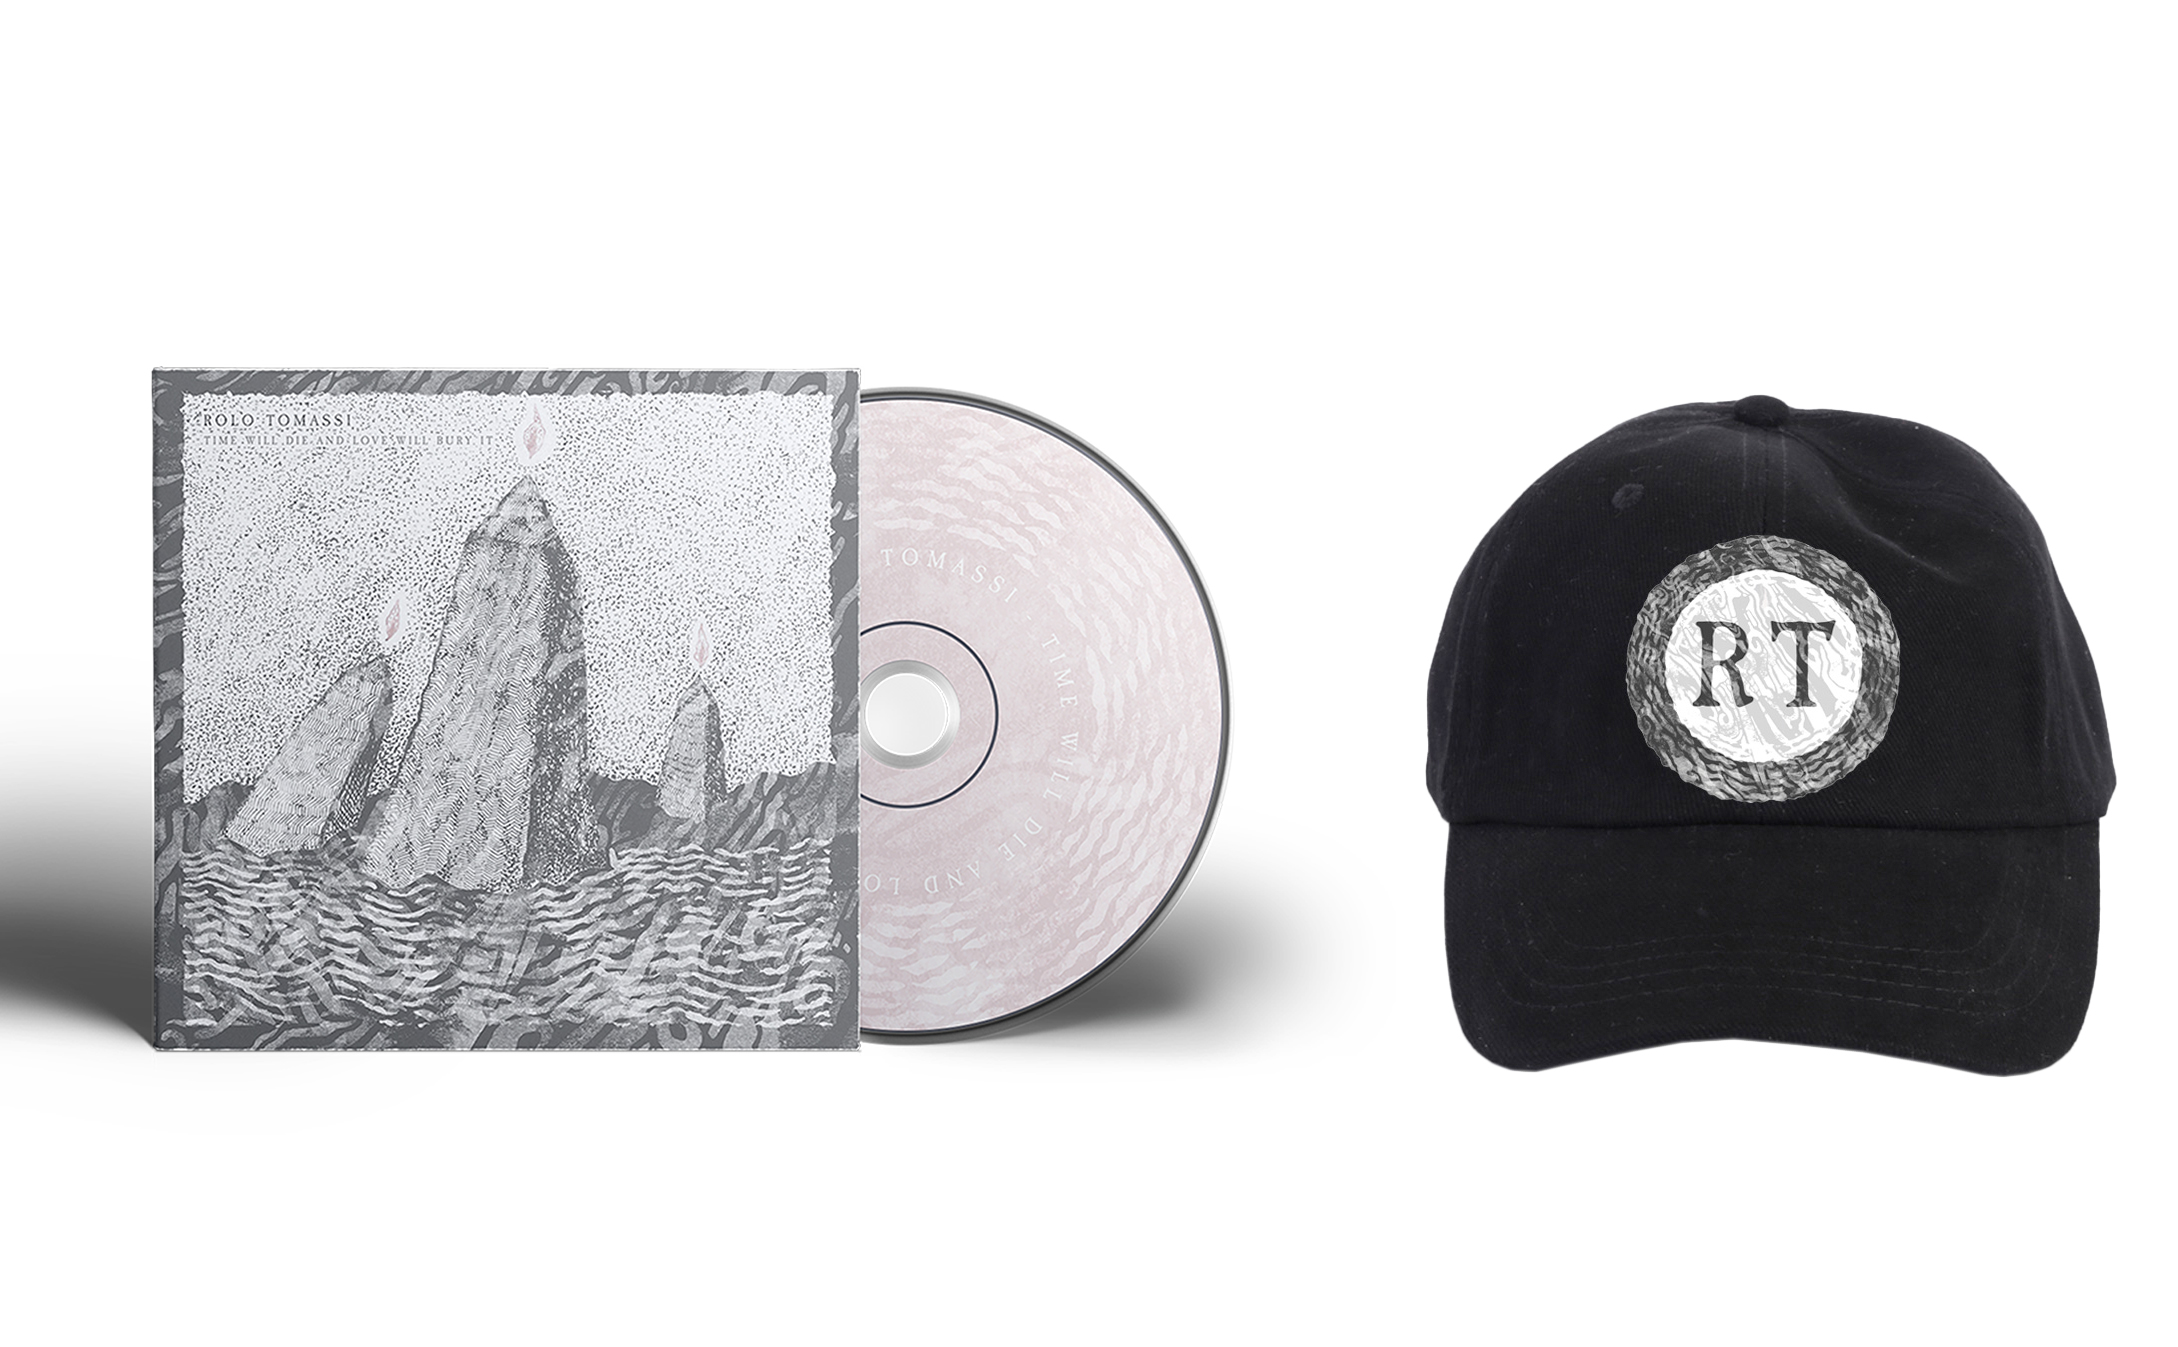 Rolo Tomassi - '...Love Will Bury It' CD + cap